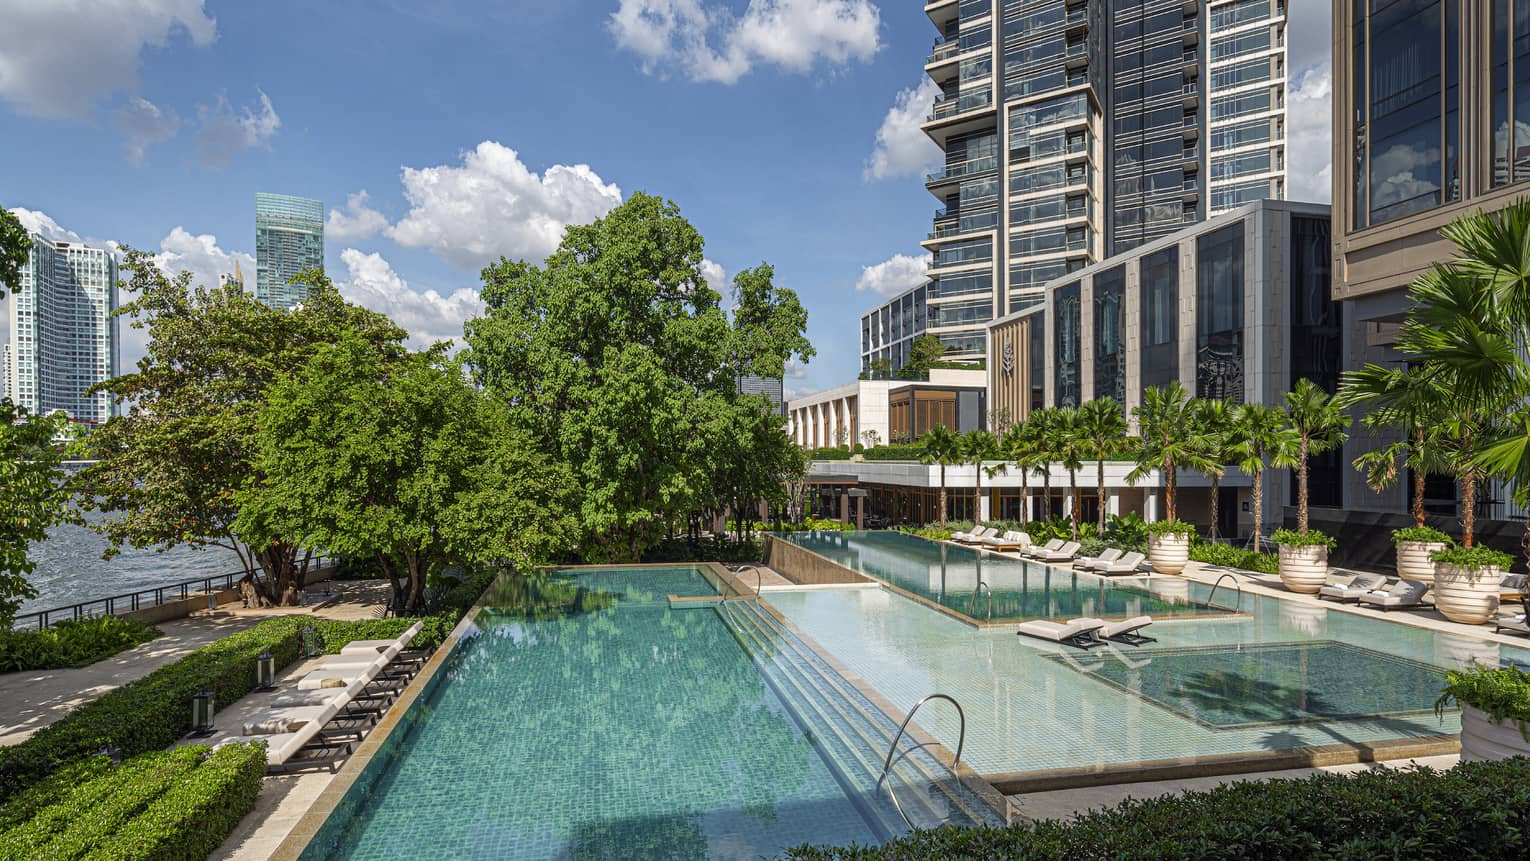 Rectangular hotel pools, staggered, with trees, overlooking Chao Phraya River